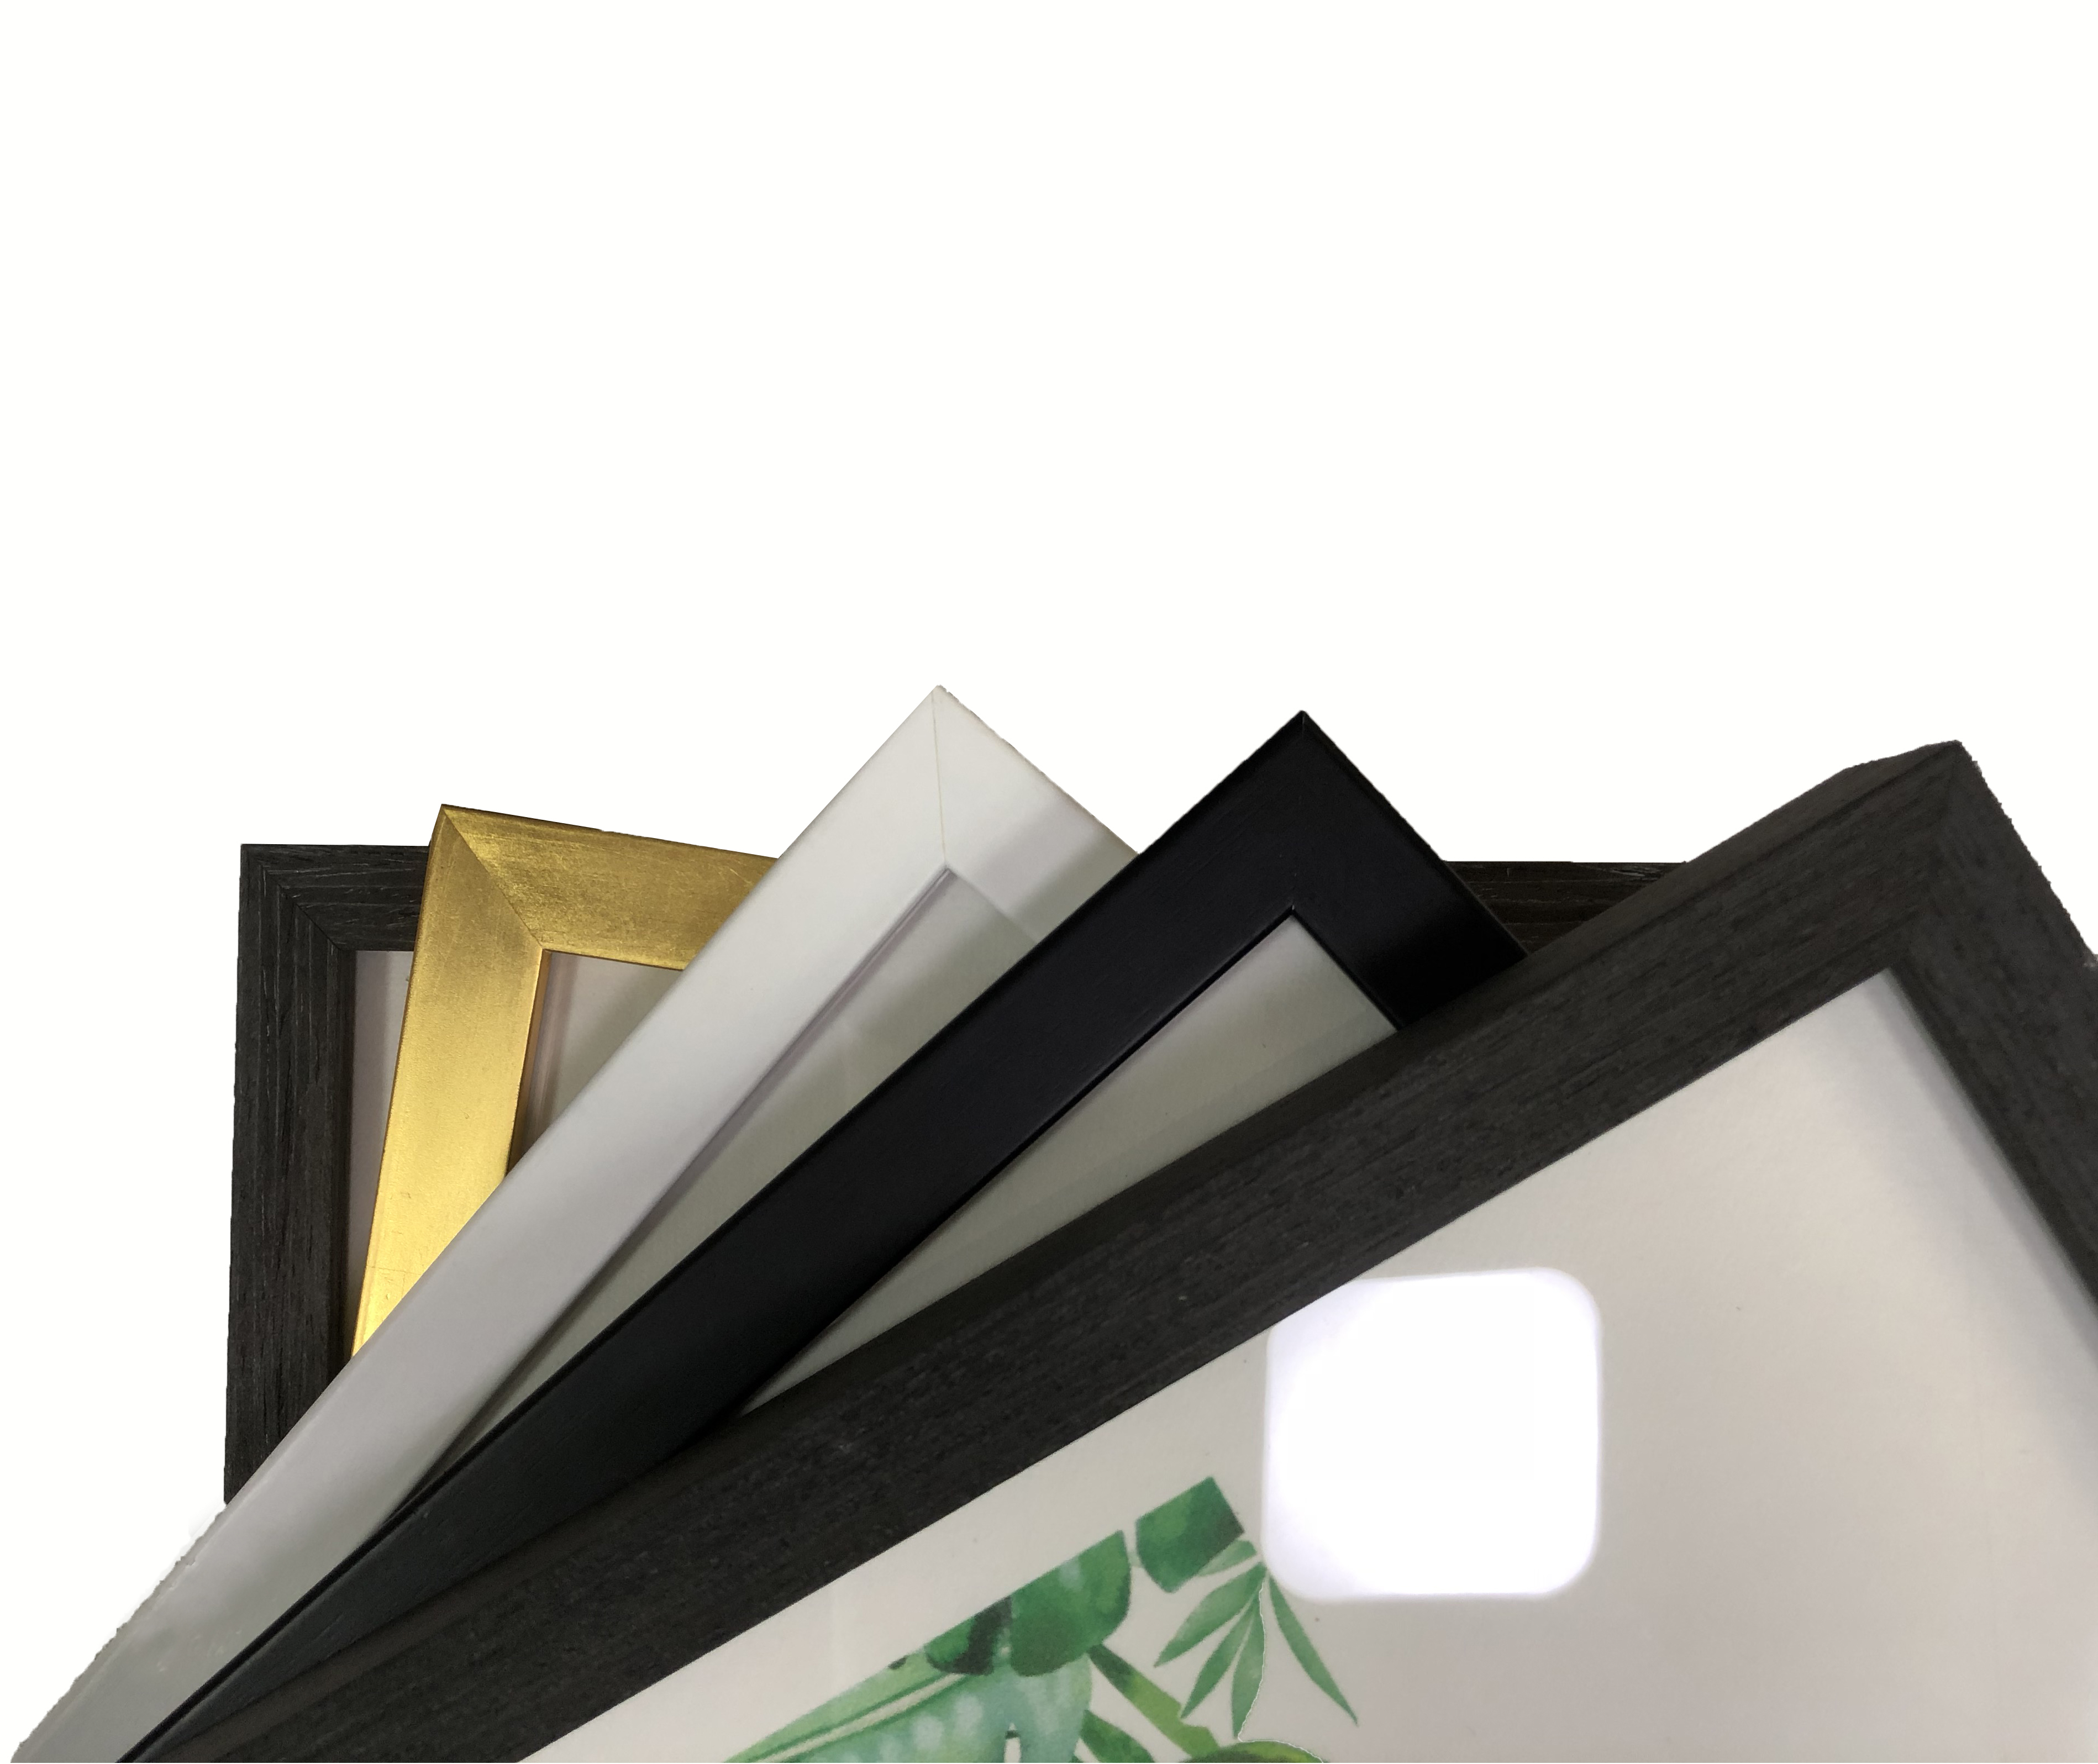 China Wholesale Square Wood Photo <strong>Frame</strong> <strong>A0</strong> A1 A2 A3 A4 6r 4r Size Reusable White Black Light Picture <strong>Frame</strong>